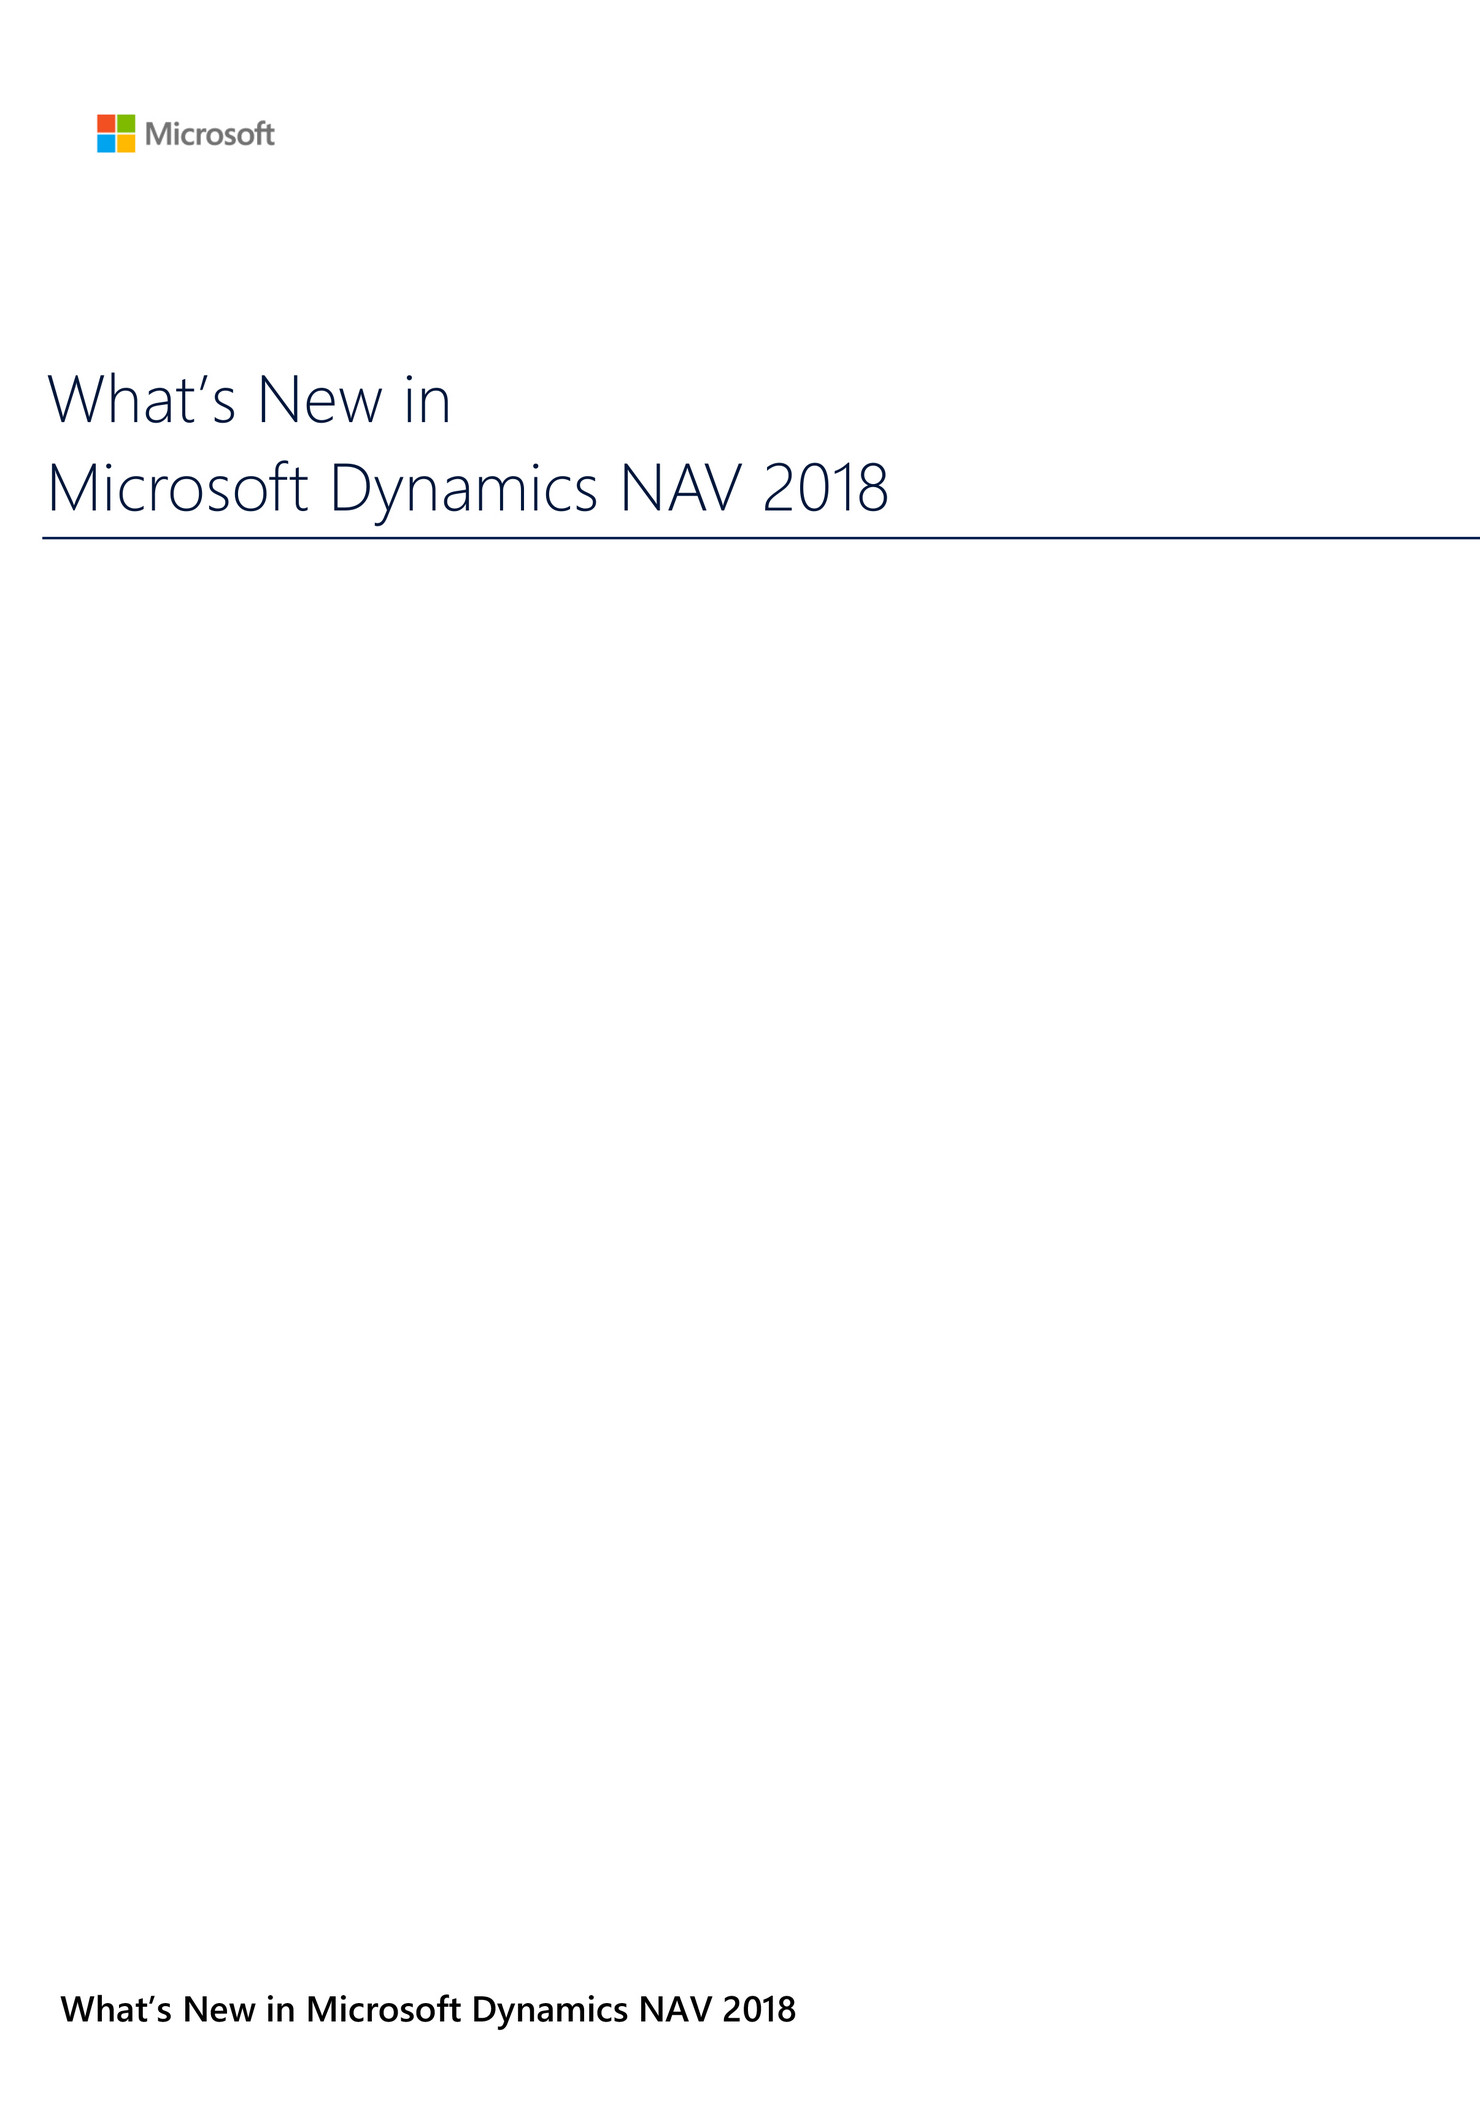 WhitePaper What's New in Microsoft Dynamics NAV 2018